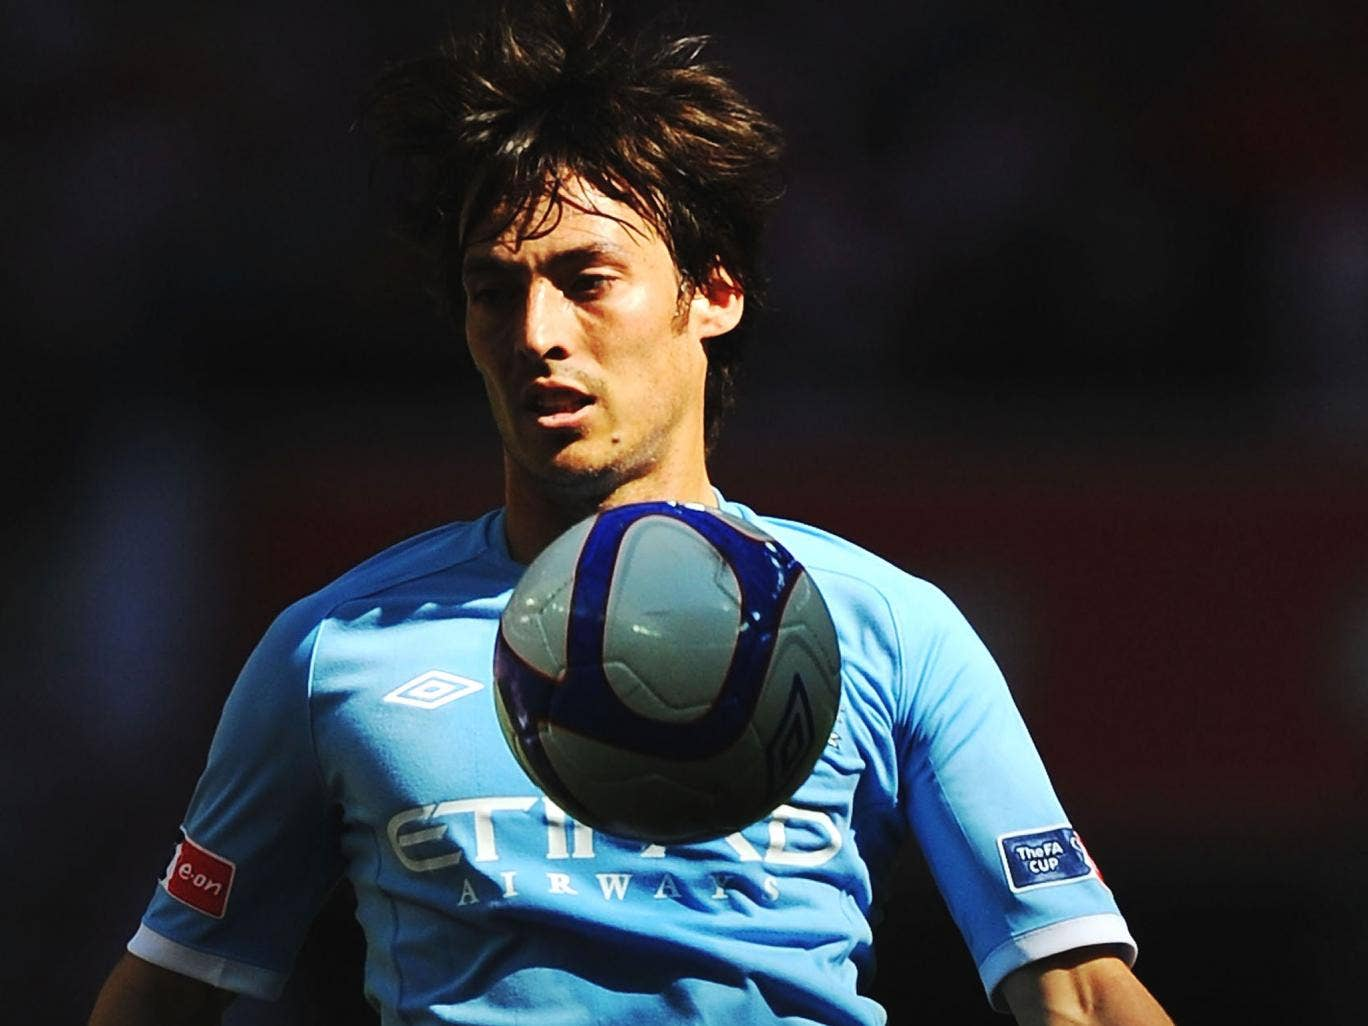 Out of United's shadow: 'We are building a team and a club and we will win many more titles,' says David Silva